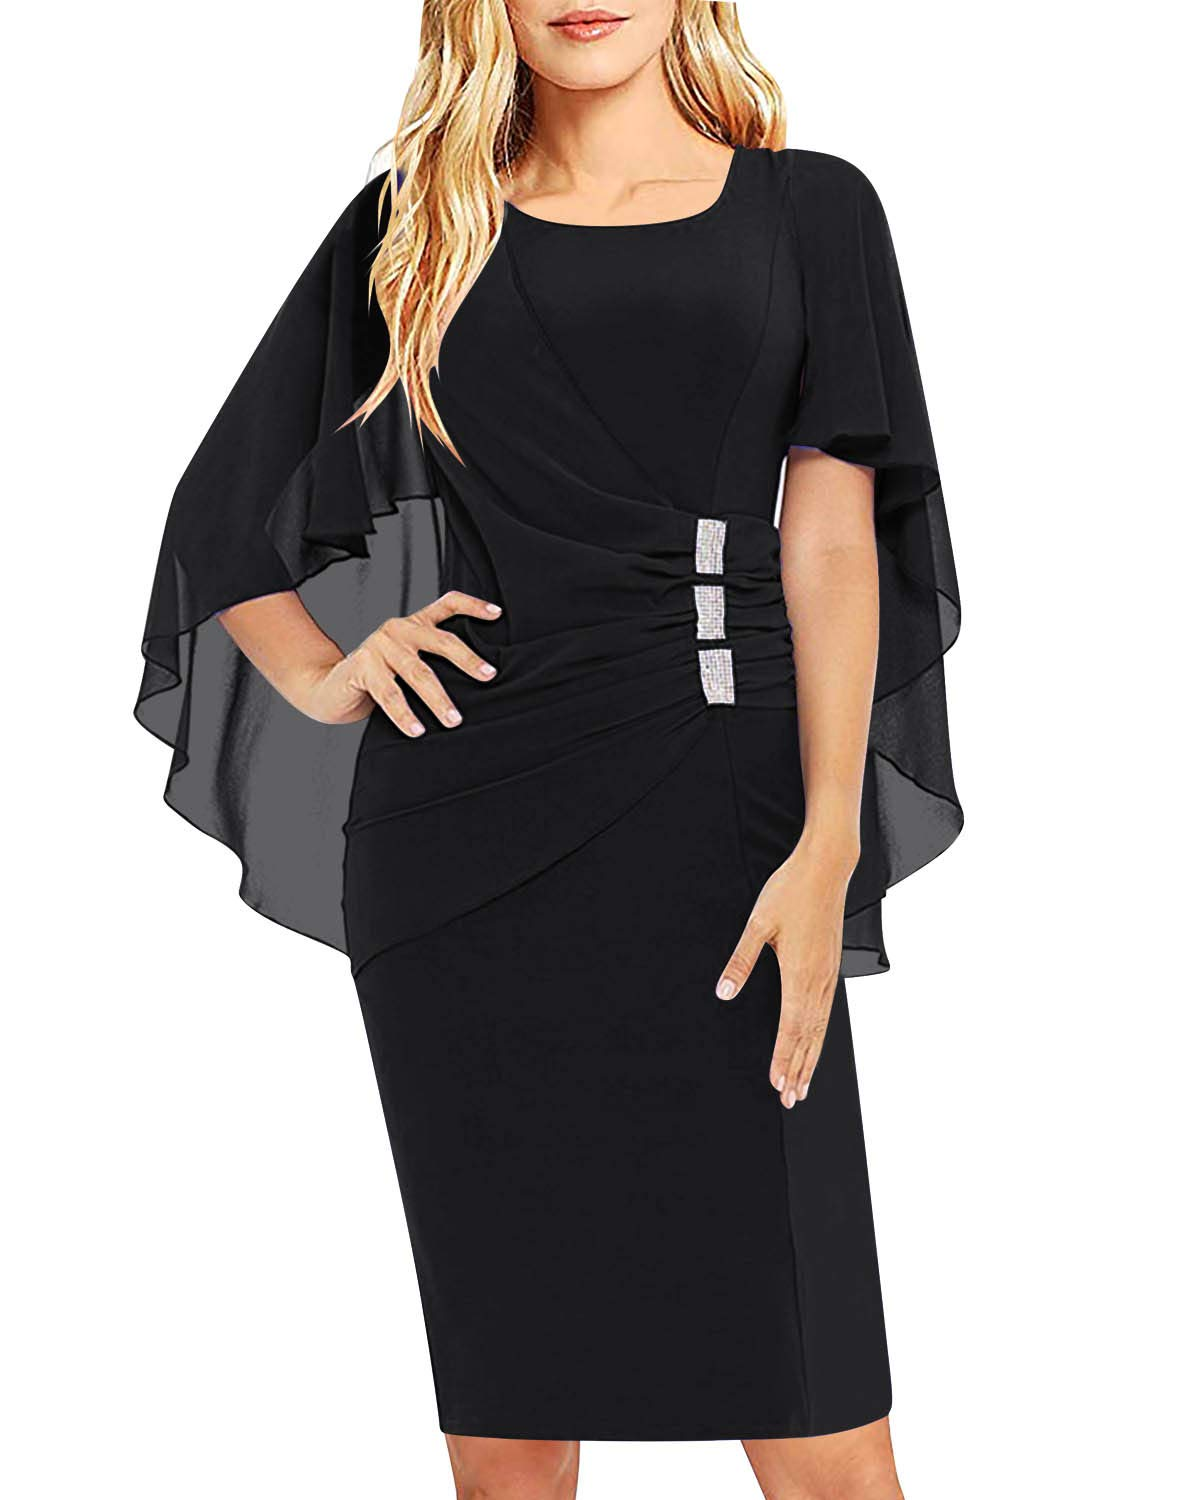 020412e781ae AUTCY Dresses for Work, Women Formal Sleeveless Business Ruffles Bodycon Cocktail  Party Midi Dress with Chiffon Cape Black M